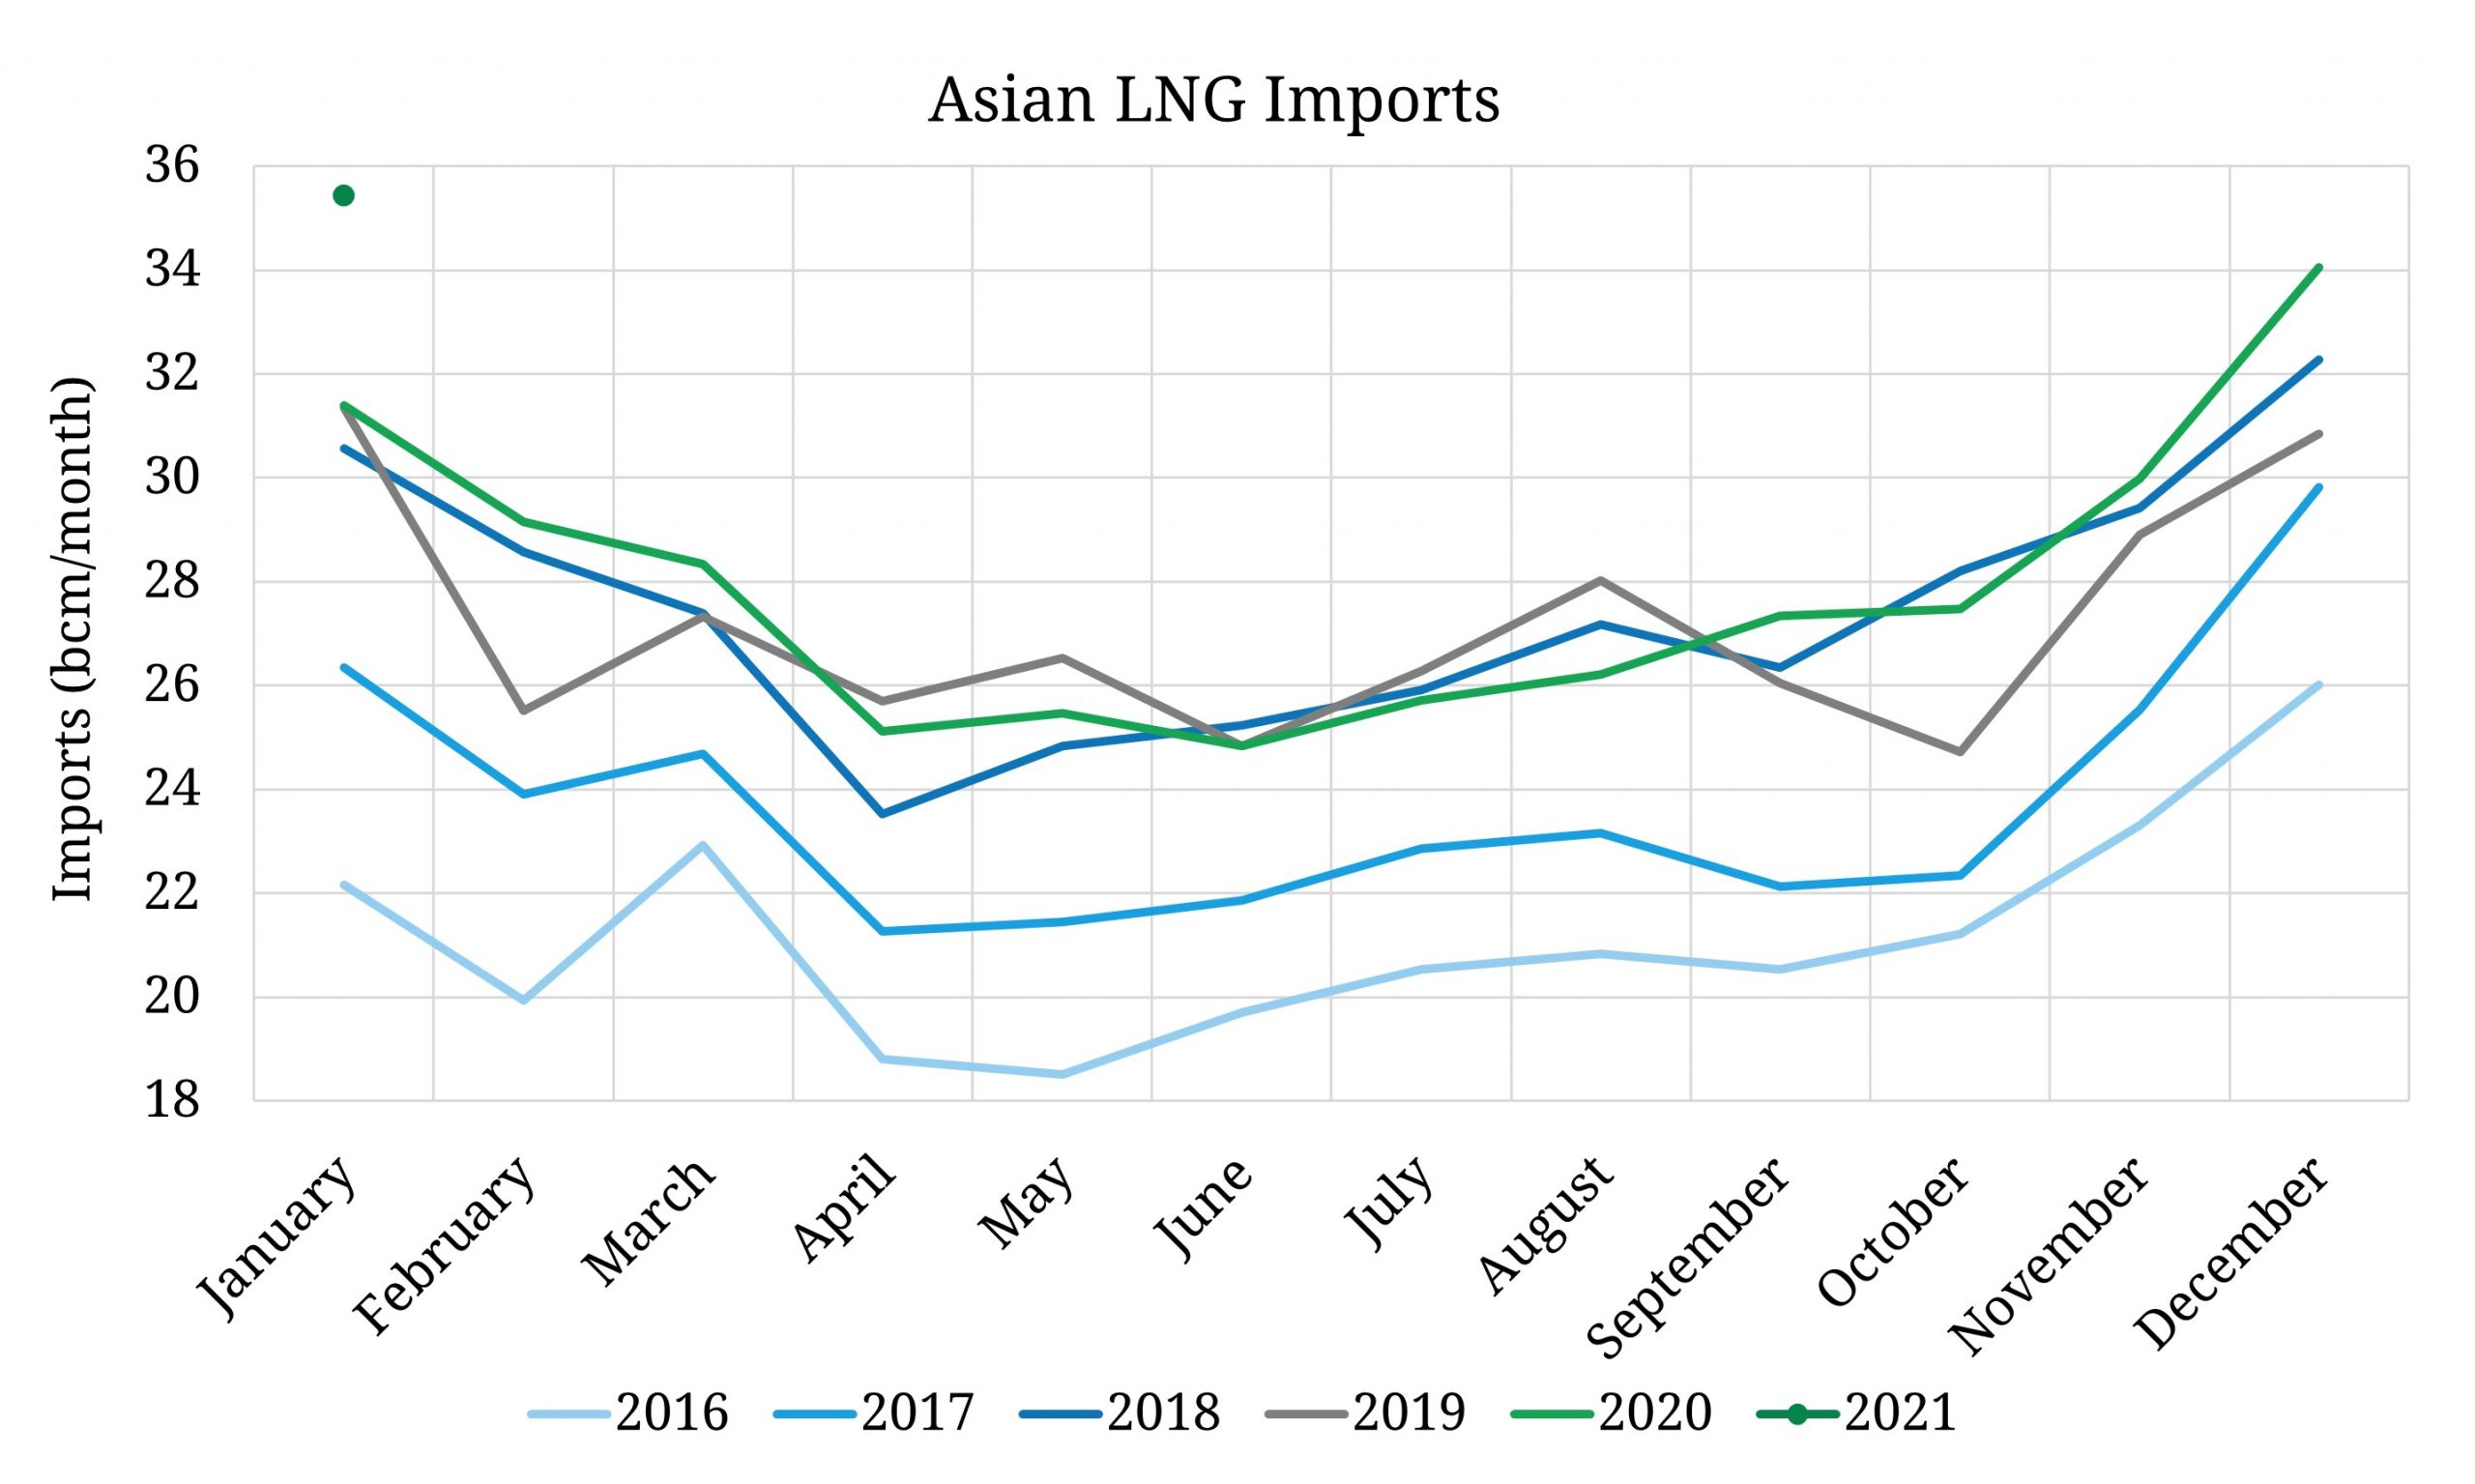 Asian LNG imports start 2021 strongly